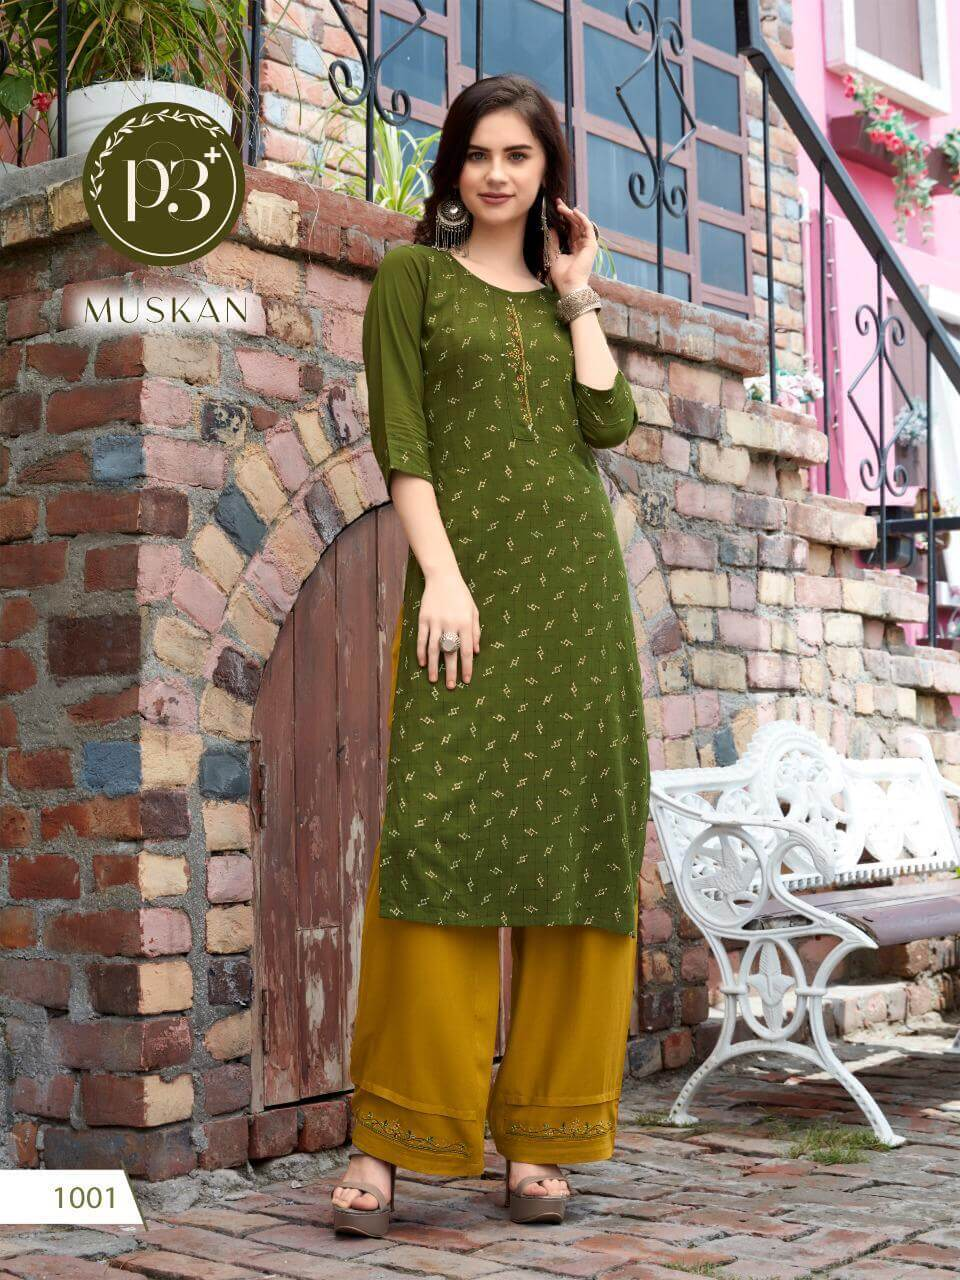 P3 Muskan collection 14